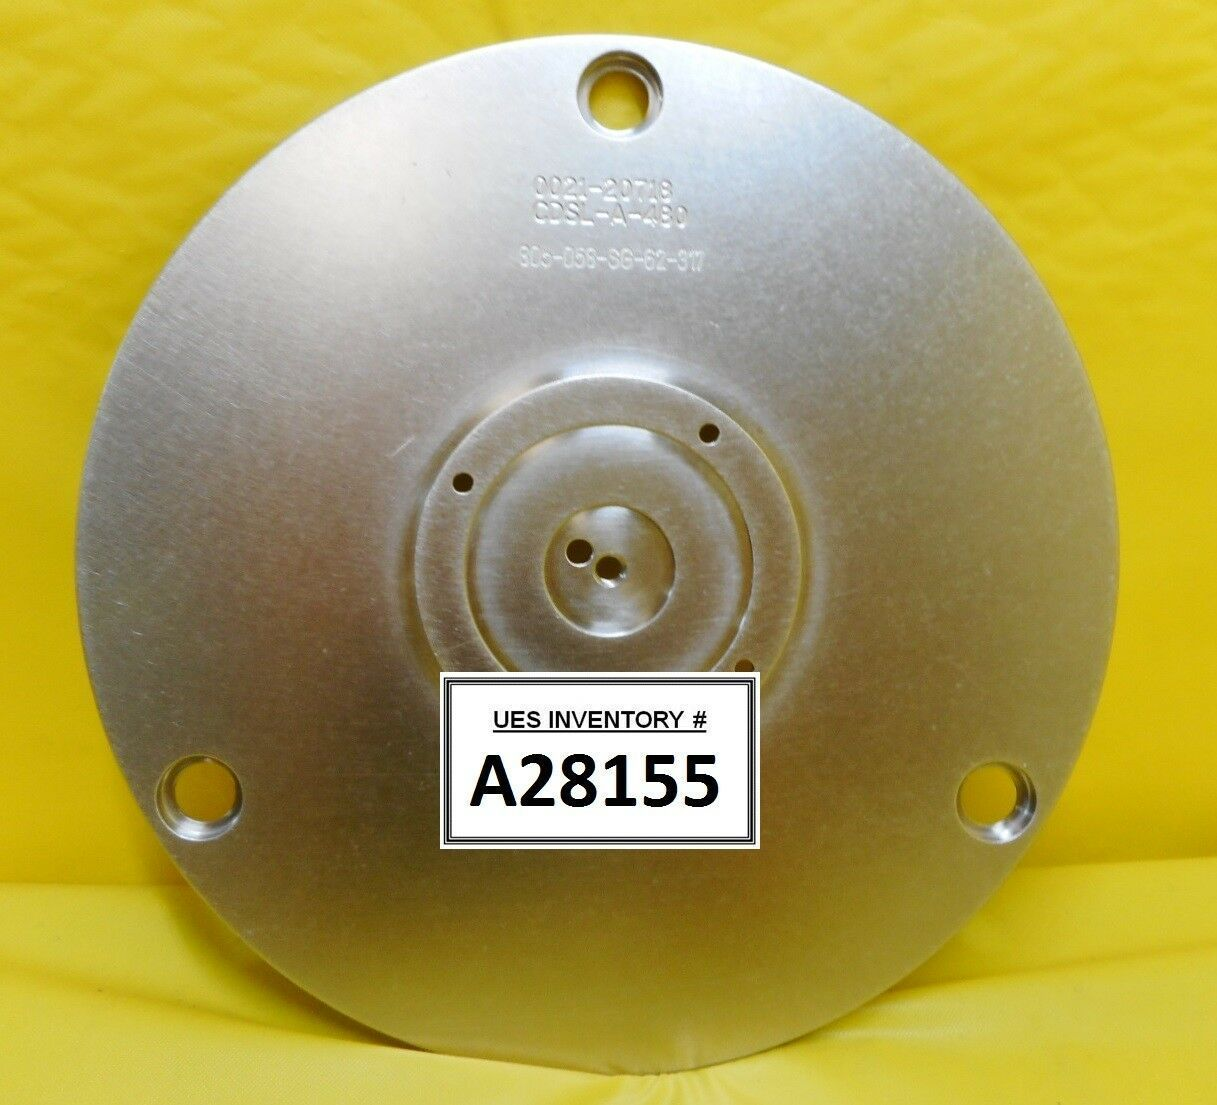 AMAT 0021-20718 Lower Pedestal Cover SS CDSL-A-480 805-058-SG-62-317 Used